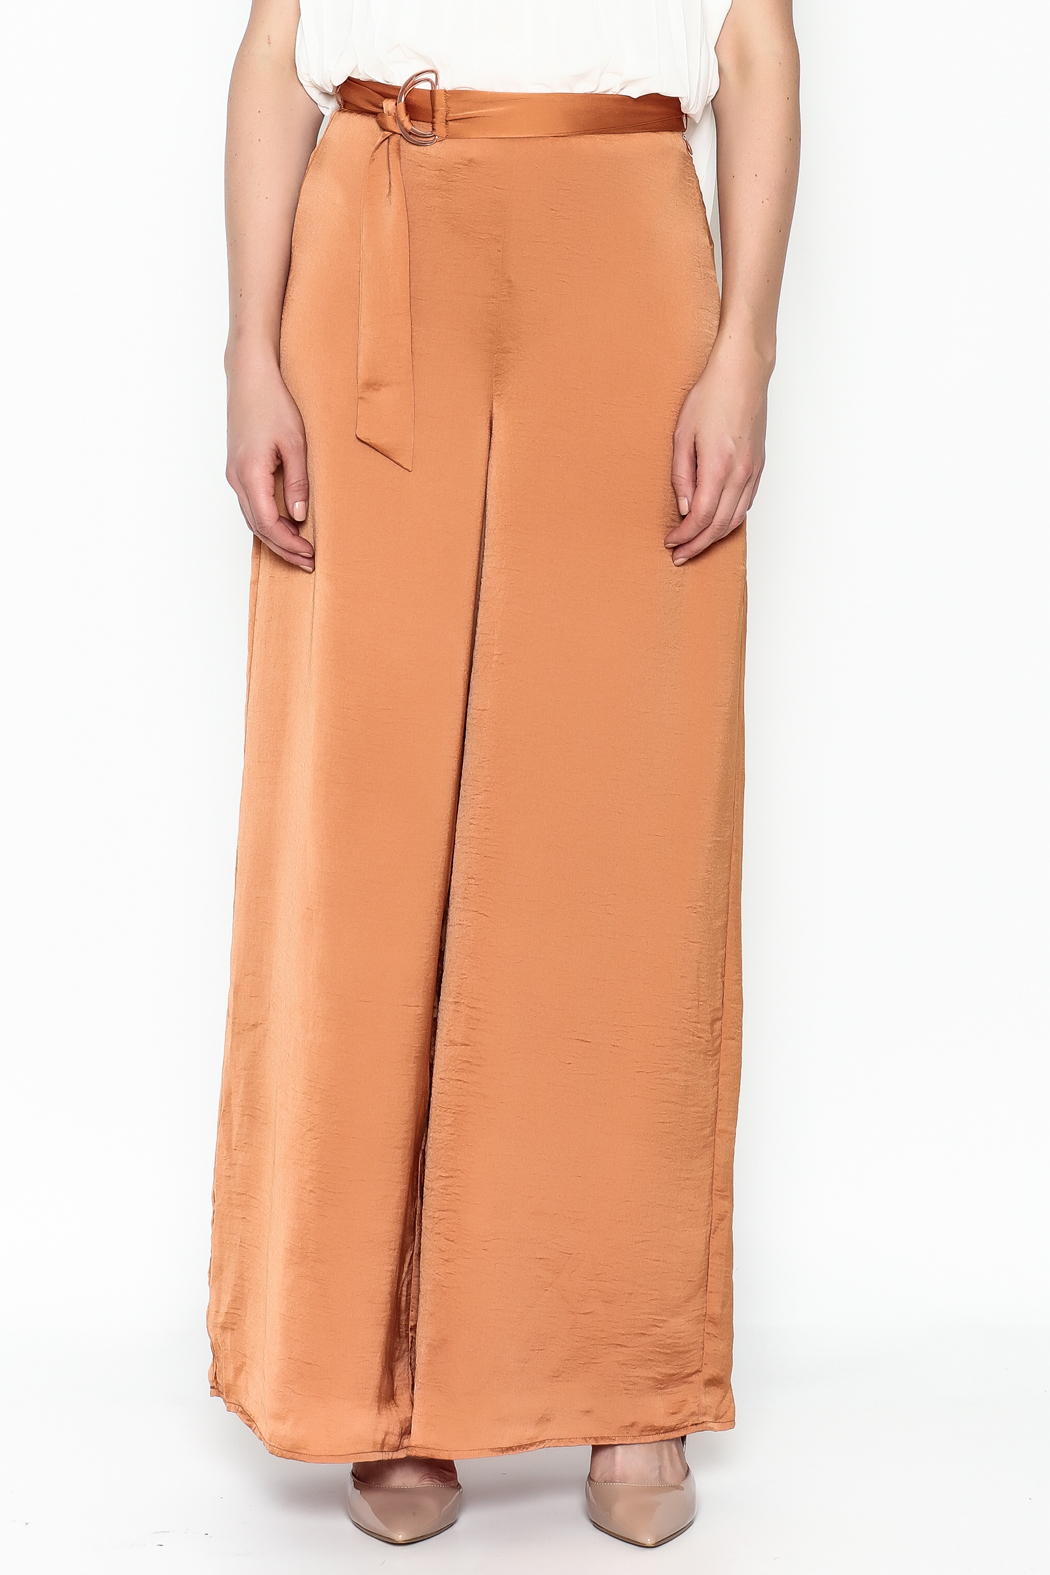 Lucy Paris Terra Cotta Pants - Front Full Image